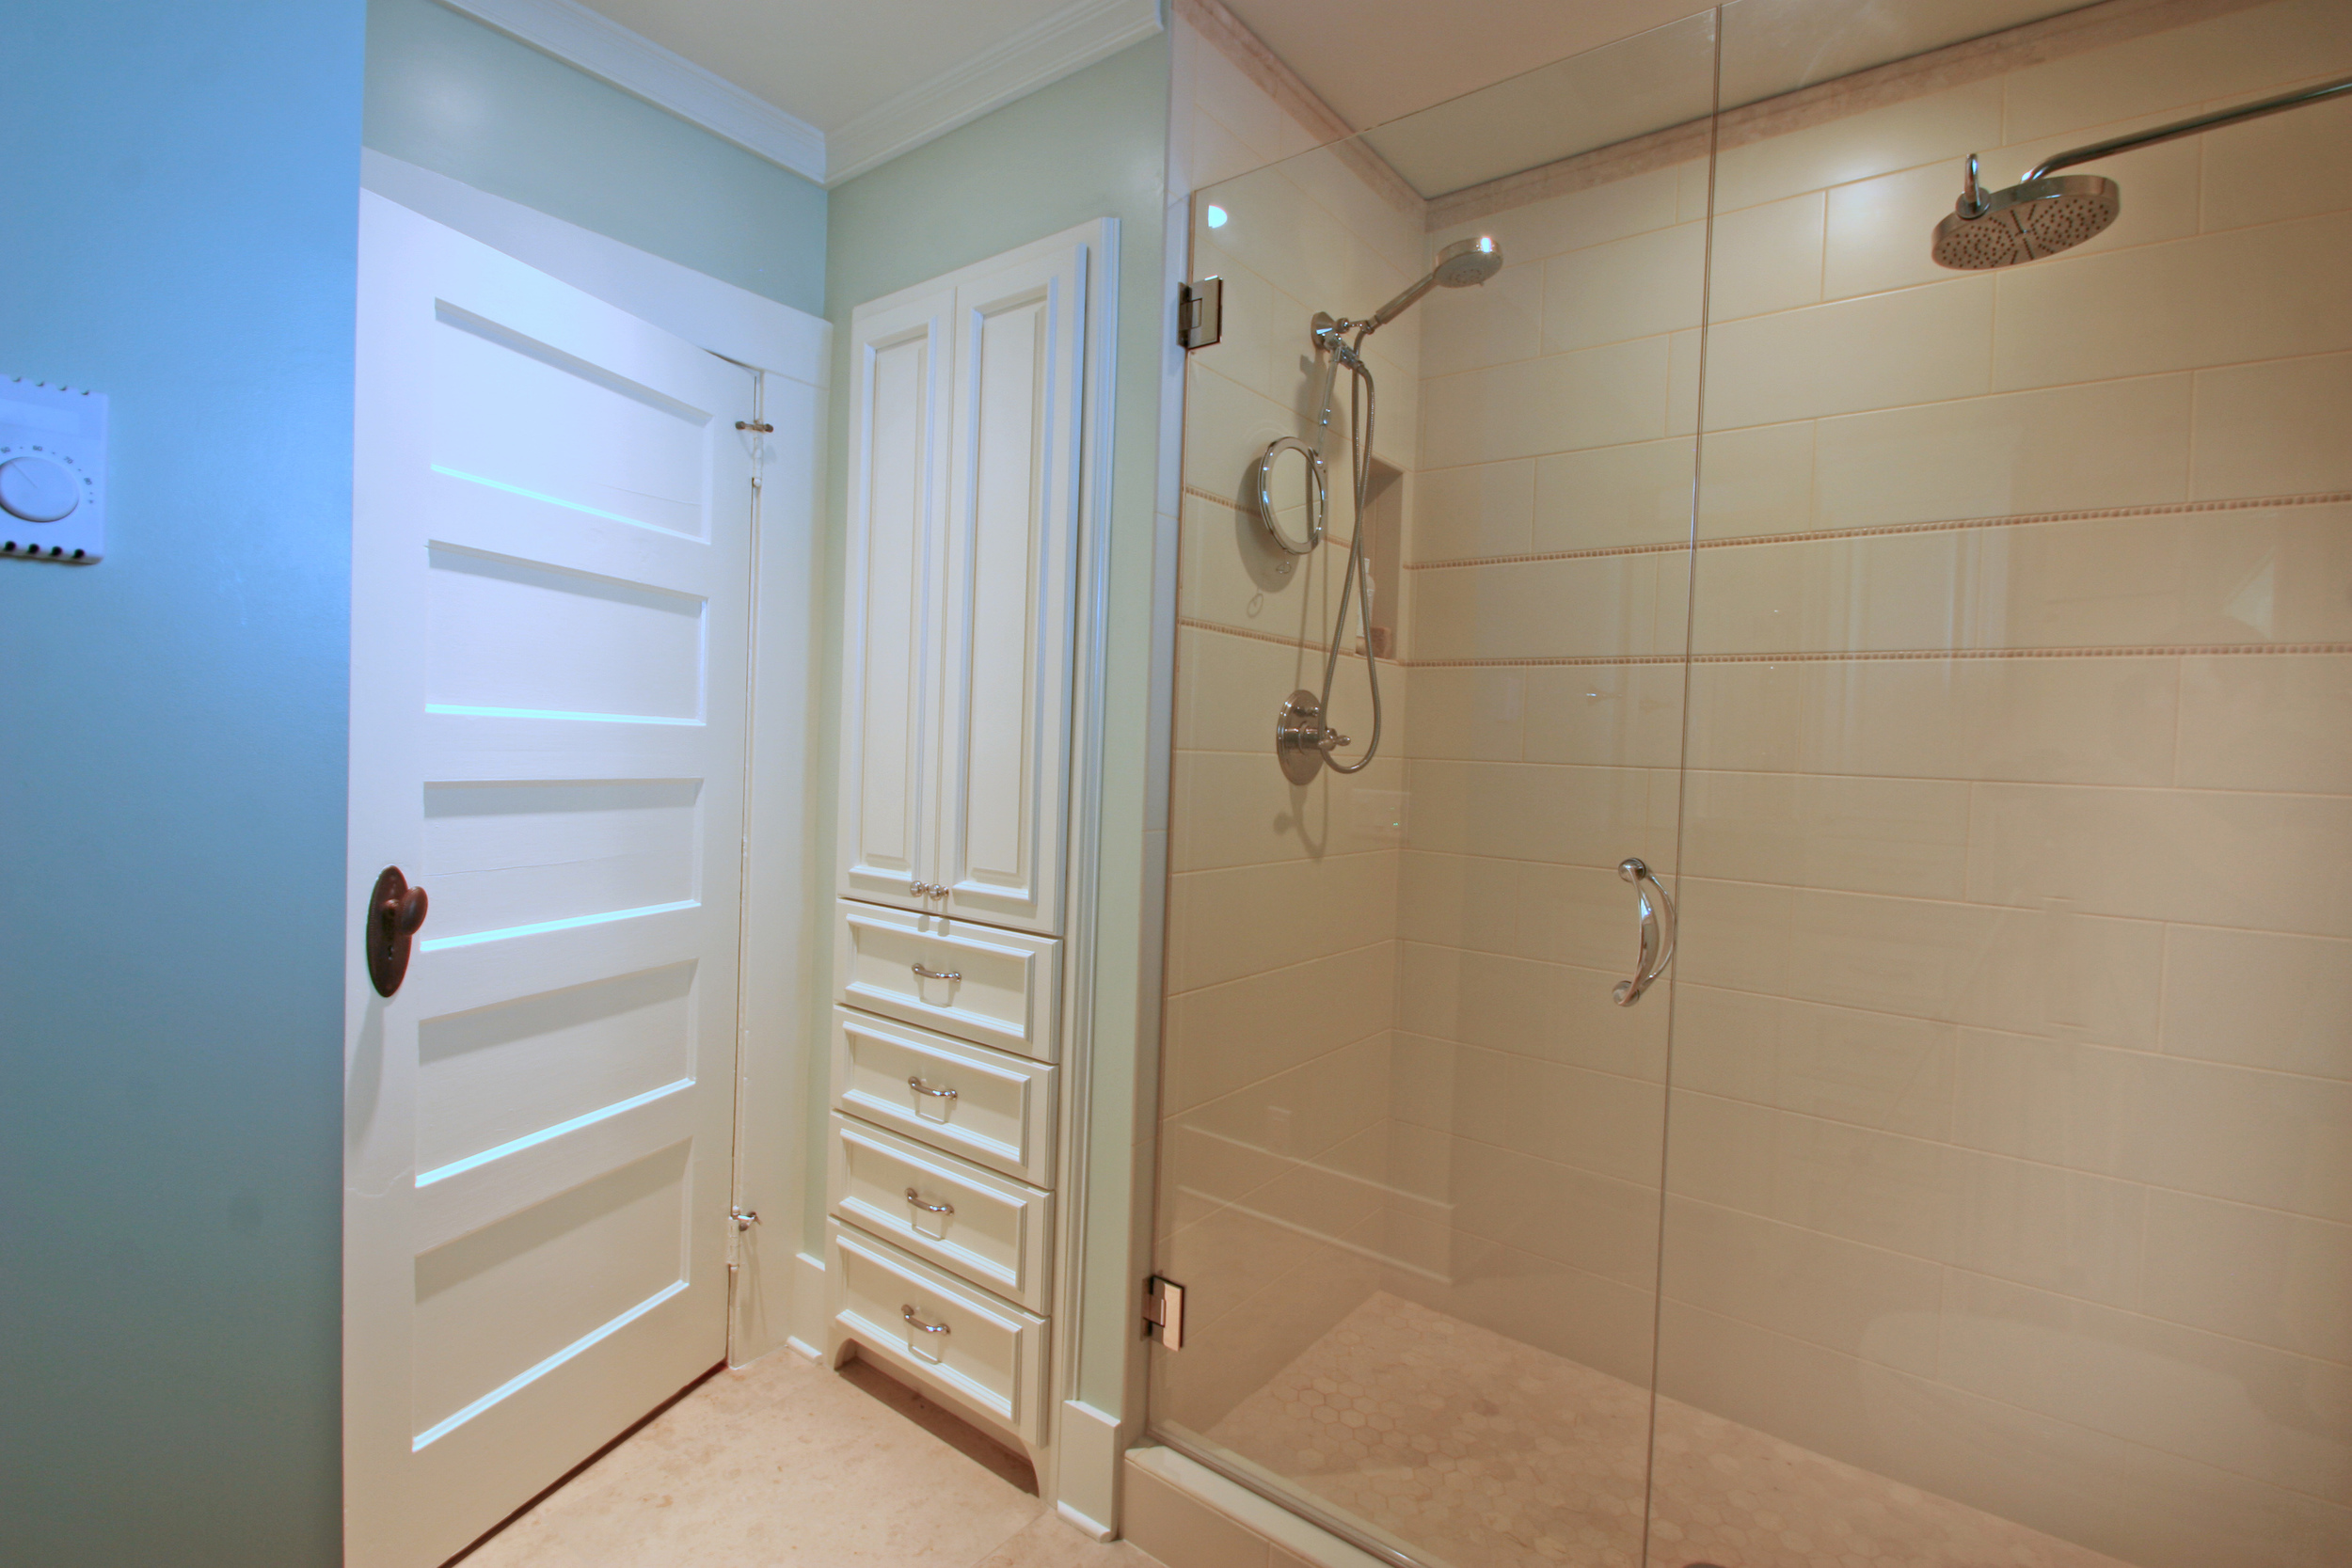 storage solutions for bathrooms, linen closets in bathrooms, finished designs by garrison hullinger interior design